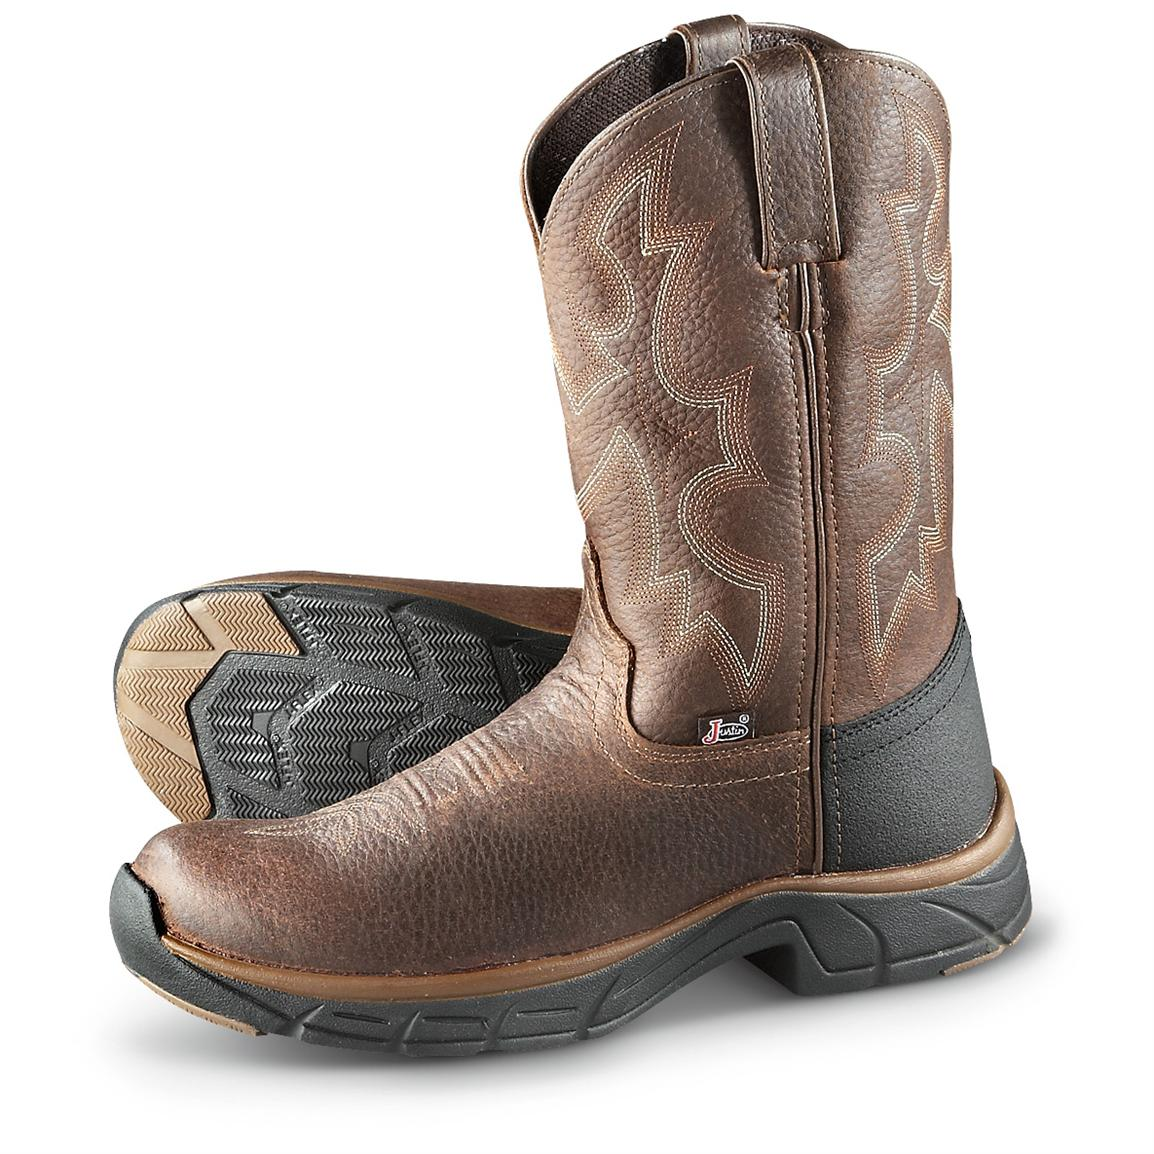 Men's Justin® 10 inch Stampede Rancher Boots, Pebbled Copper